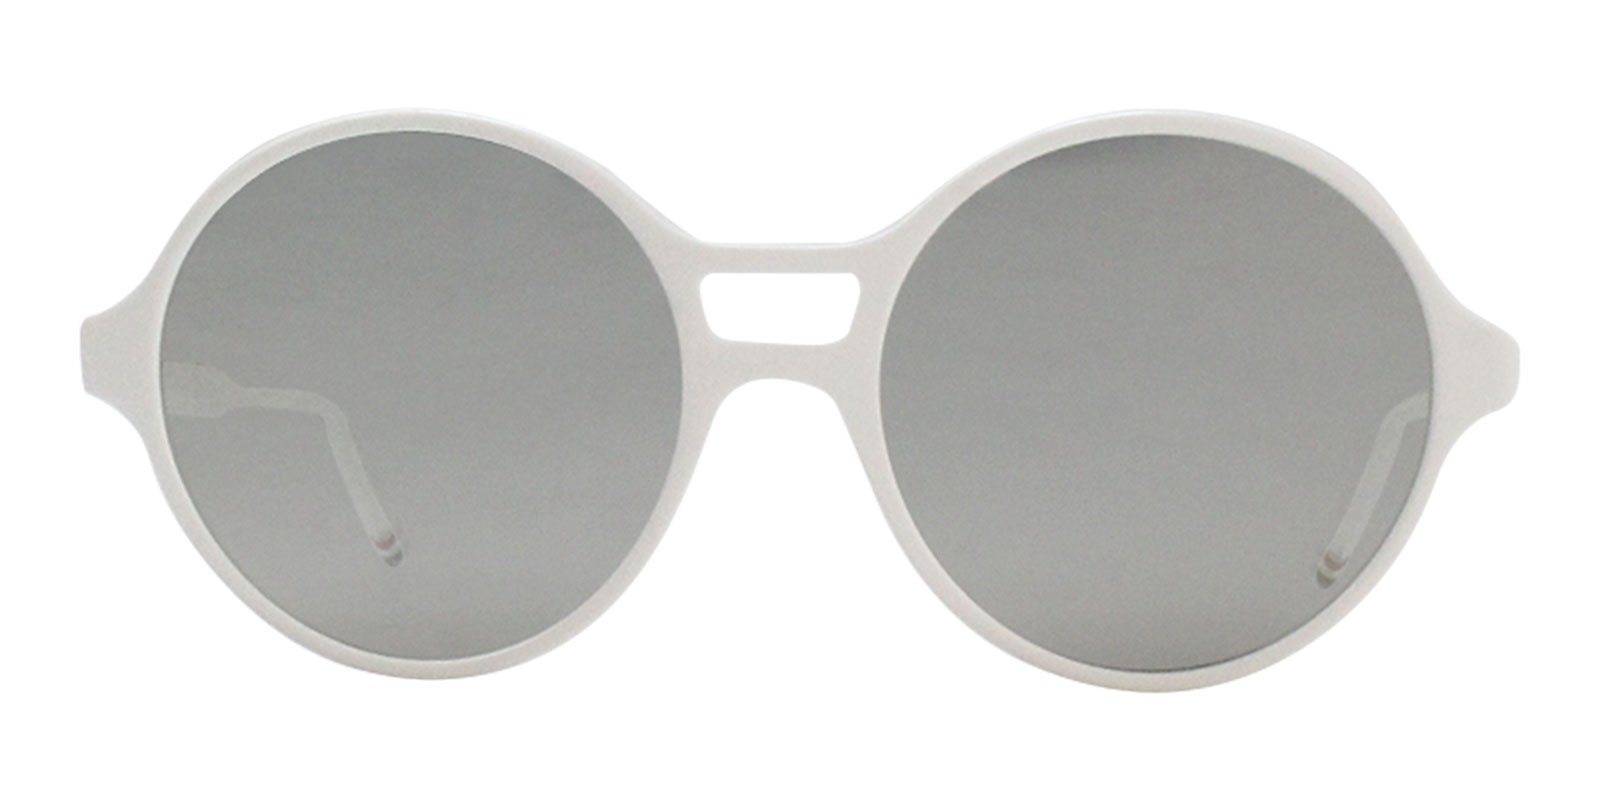 Thom Browne - TBS409 White Oval Unisex Sunglasses - 58mm-Sunglasses-Designer Eyes